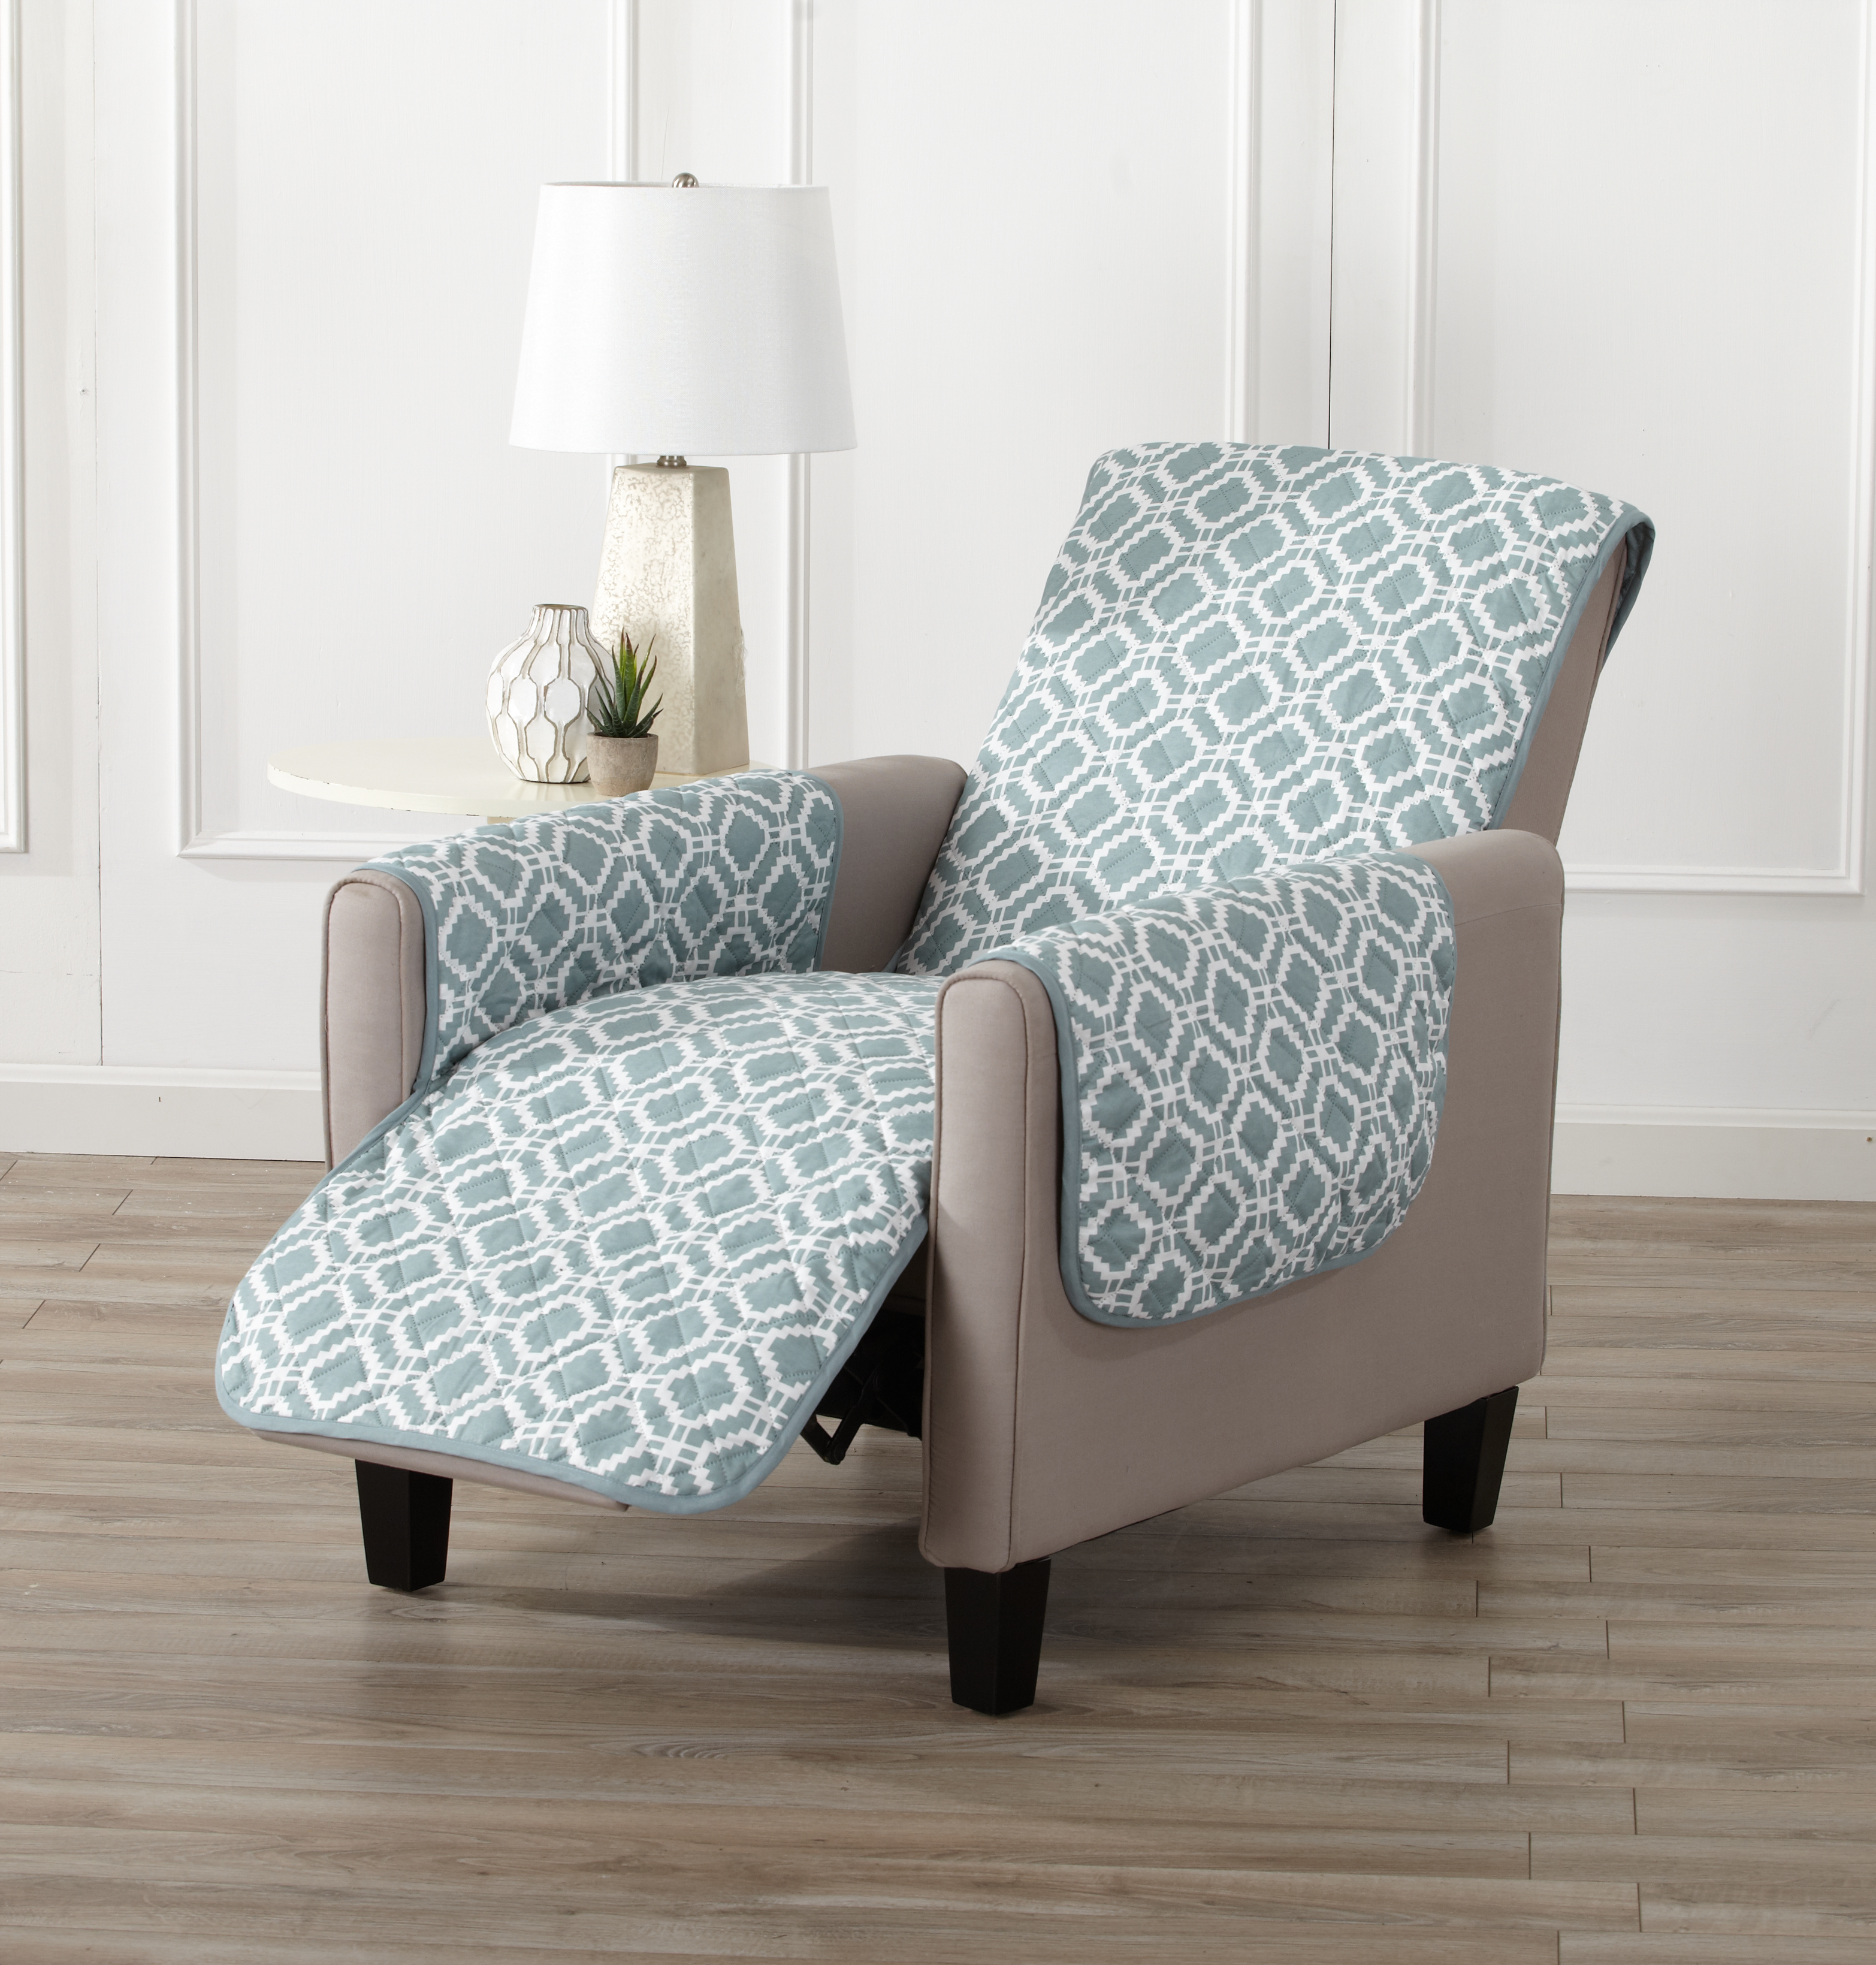 Liliana Collection Reversible Furniture Protector By Home Fashion Designs